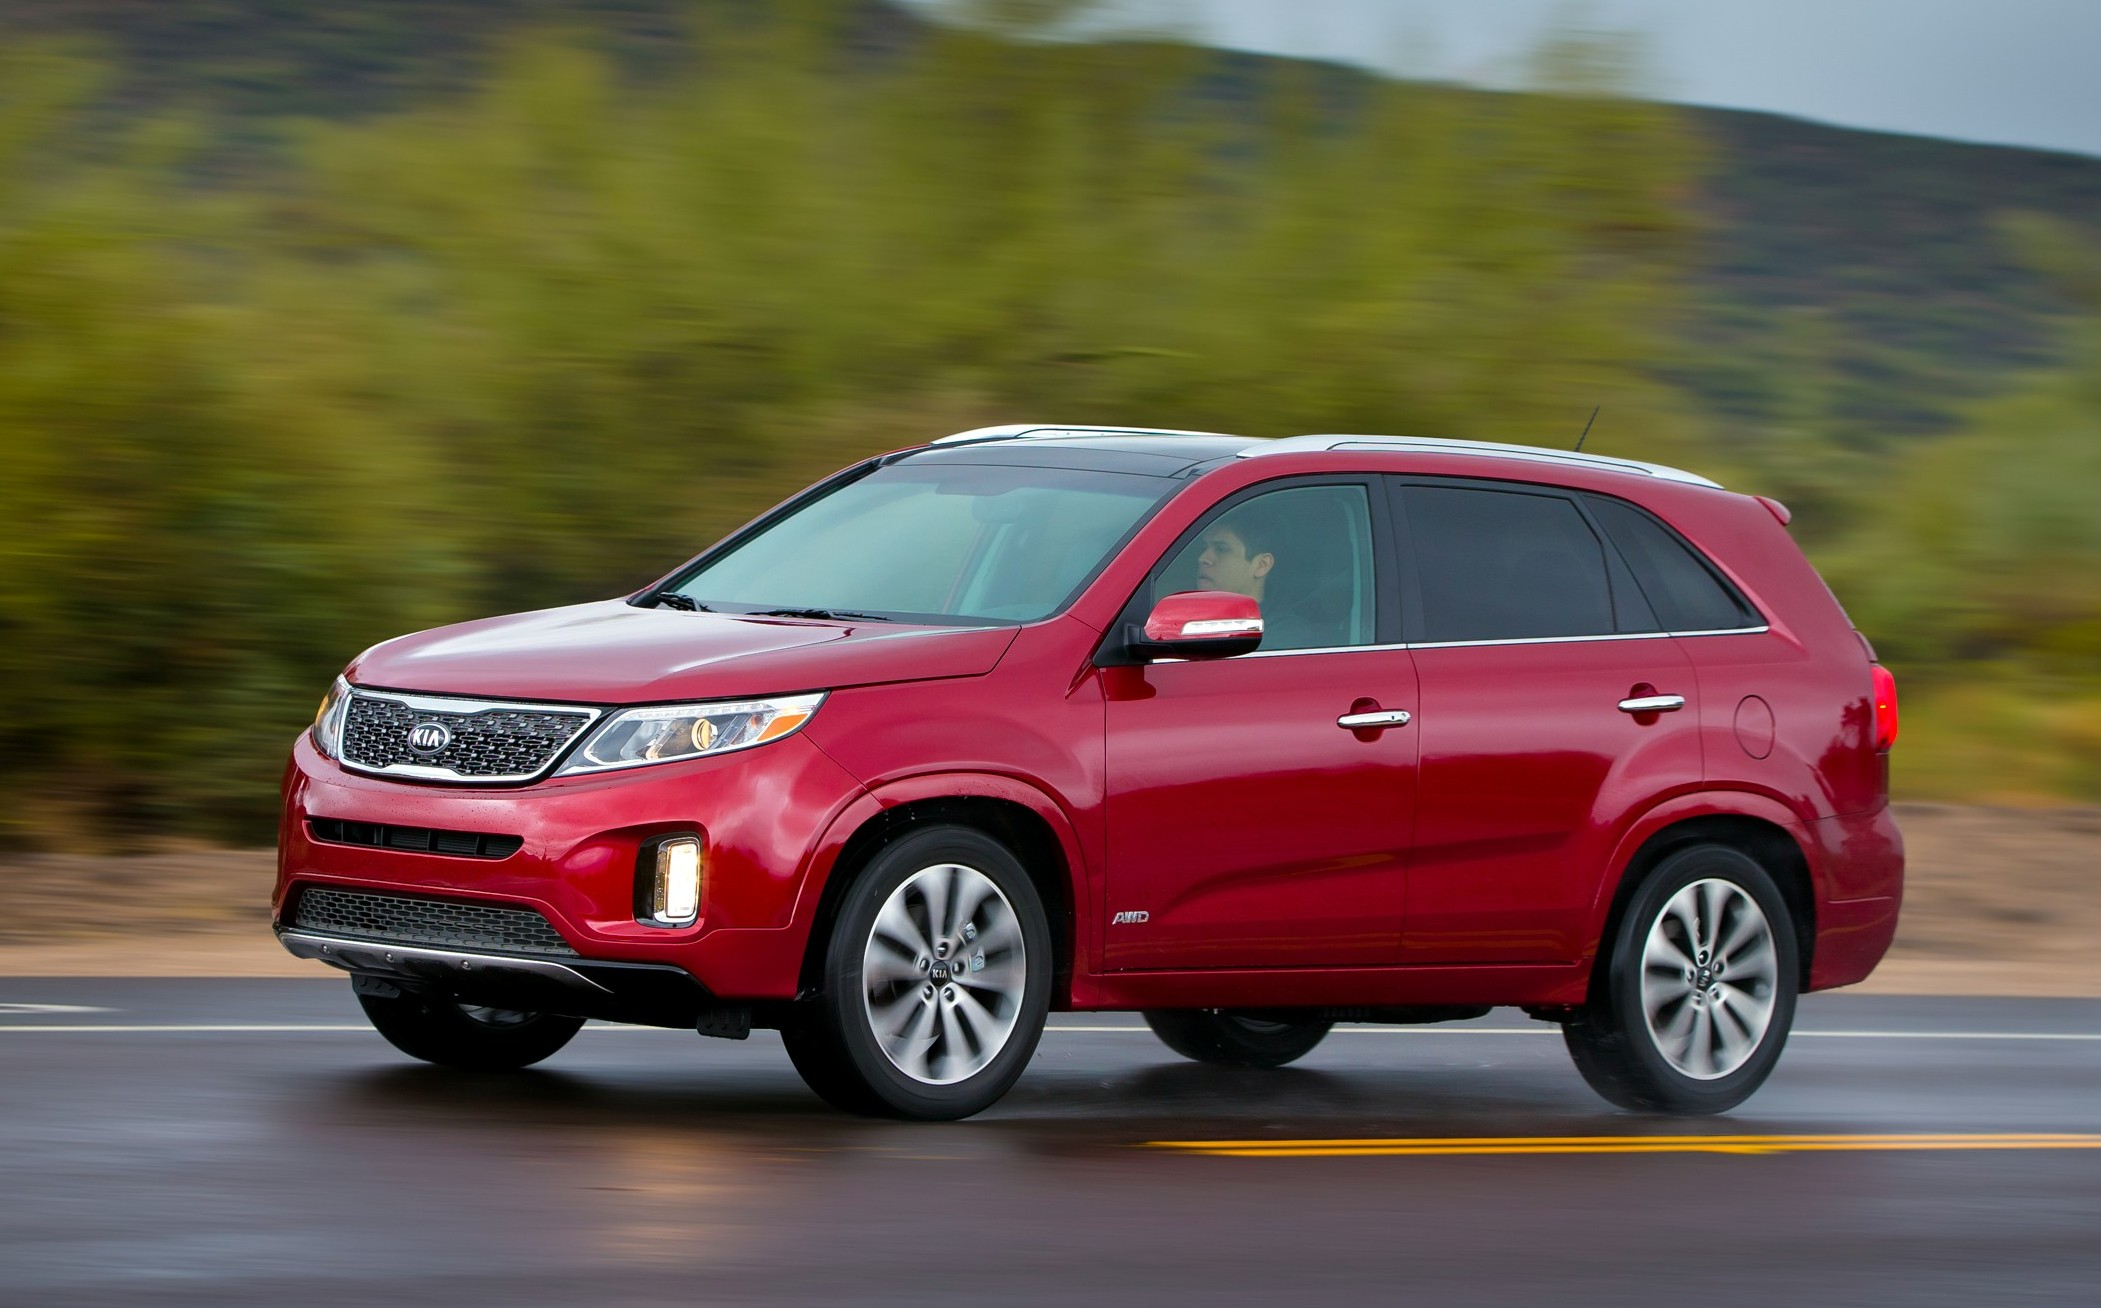 sorento price kia manufacturer turbo review news sx autoguide limited com